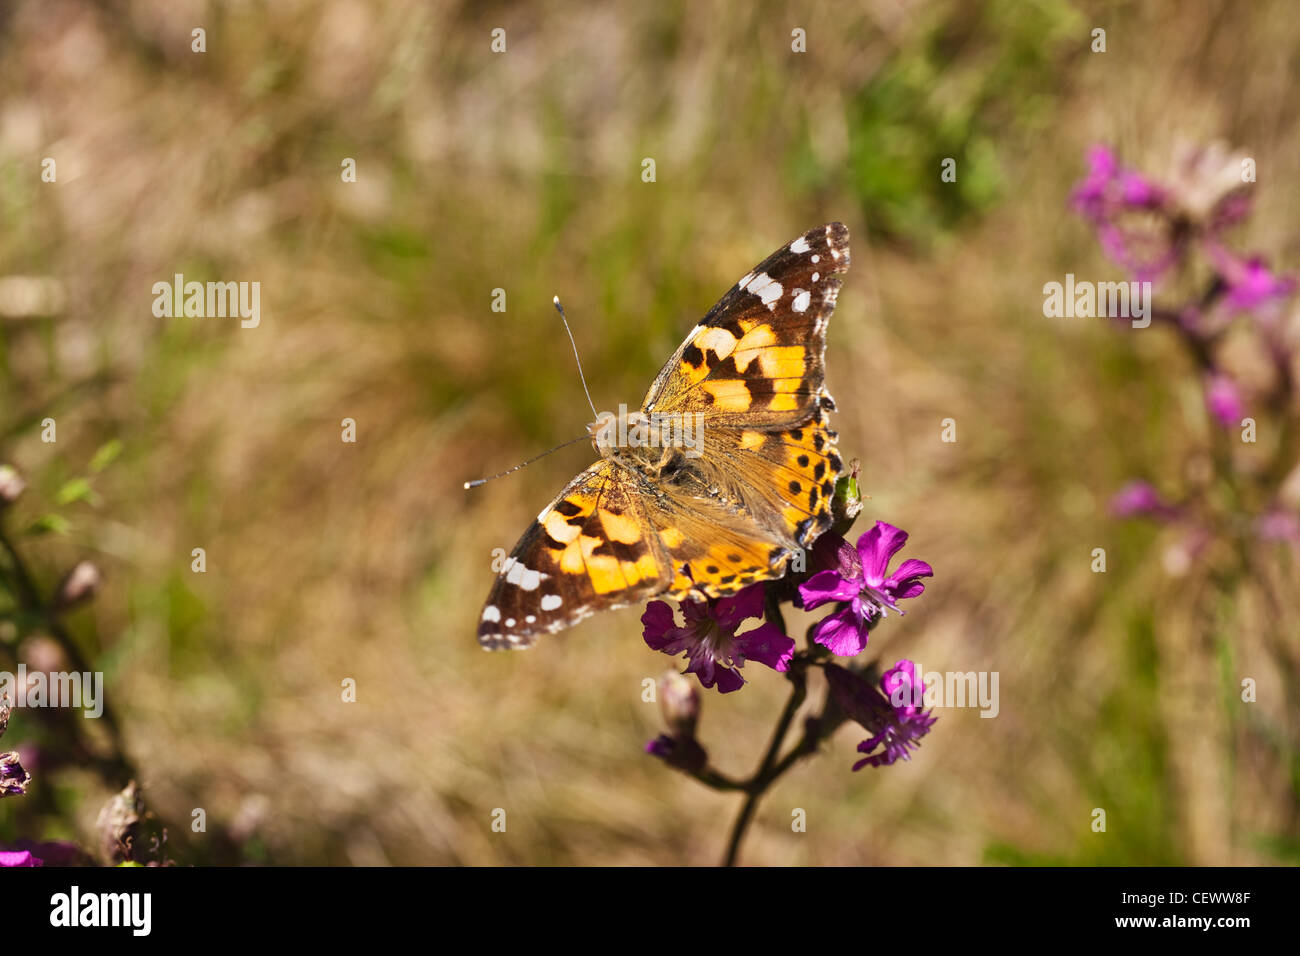 Detailansicht eines Distelfalters | Detail photo of a Painted Lady - Stock Image